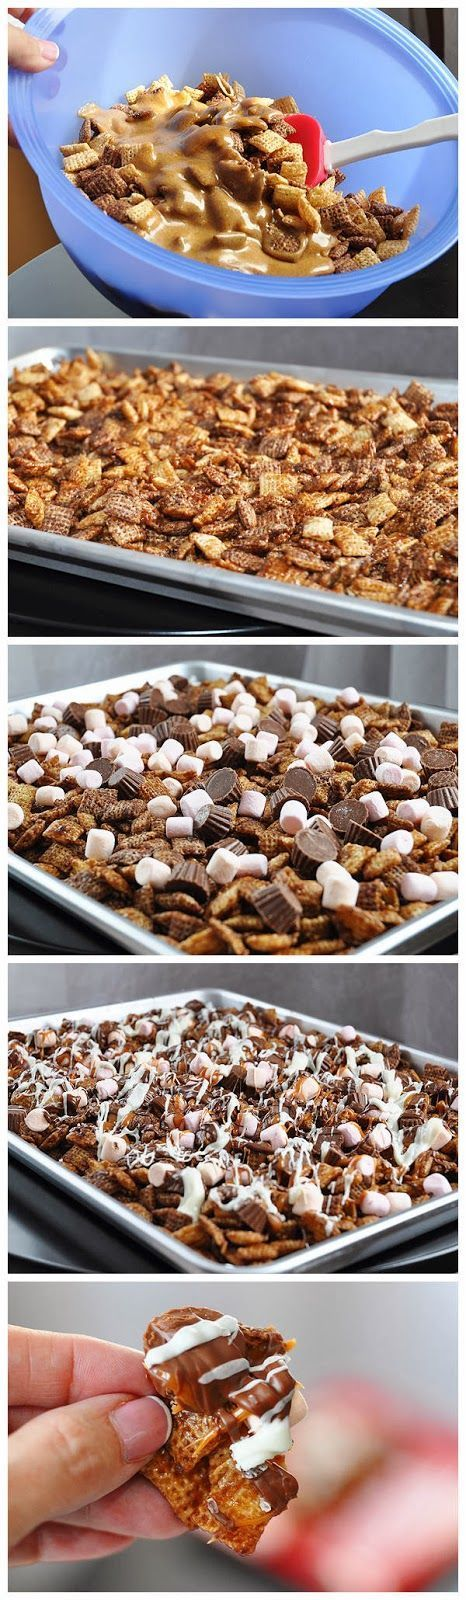 Better than Sex Chex Mix. A new and Improved twist on puppy chow, or sweet n salty mix. yUMmY!